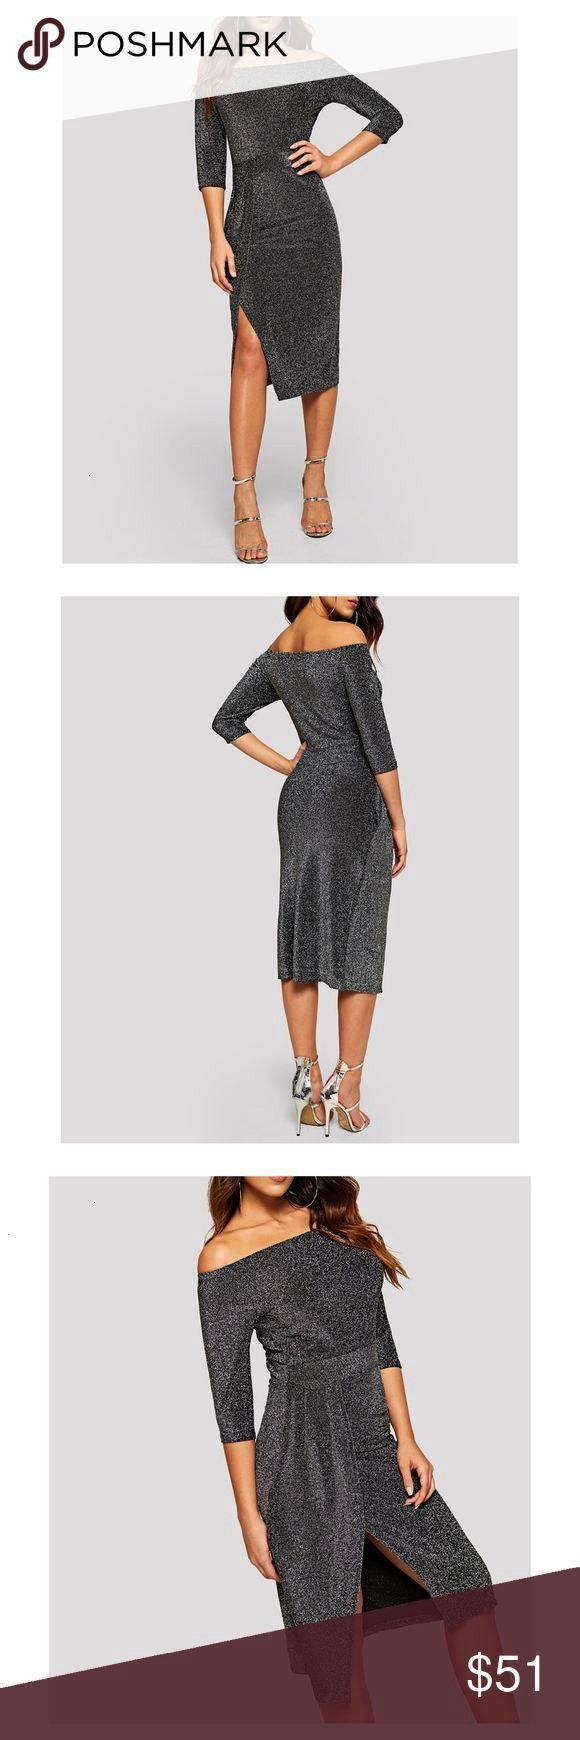 Silver Off the Shoulder Bodycon Midi Dress Off the Shoulder Neckline 34 Sleeve  Silver Off the Shoulder Bodycon Midi Dress Off the Shoulder Neckline 34 Sleeve  The perfec...